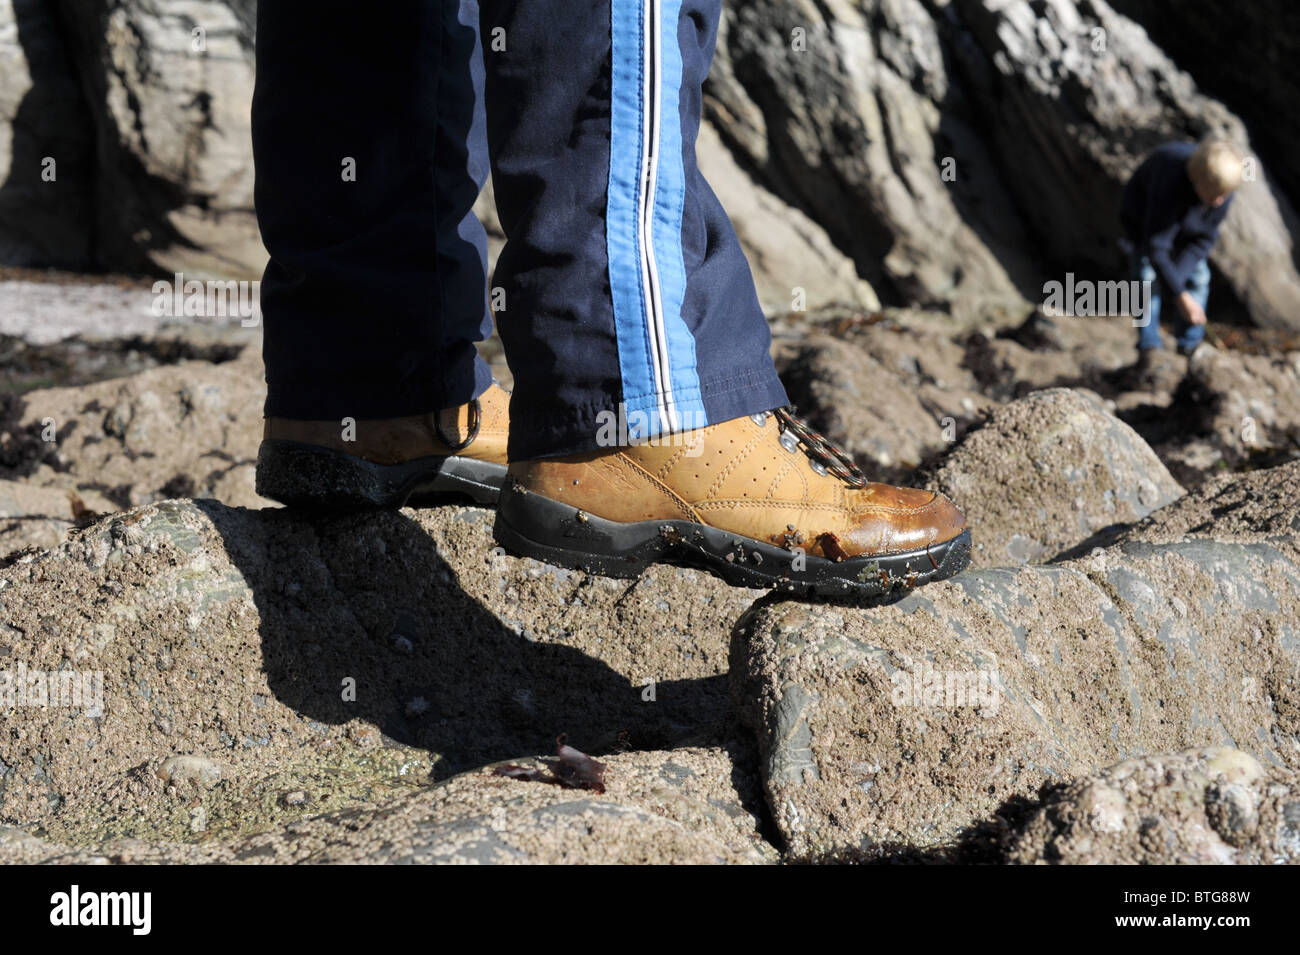 Two children in walking boots scrambling about on rocks and in rock pools at a seaside cove in autumn sunshine - Stock Image